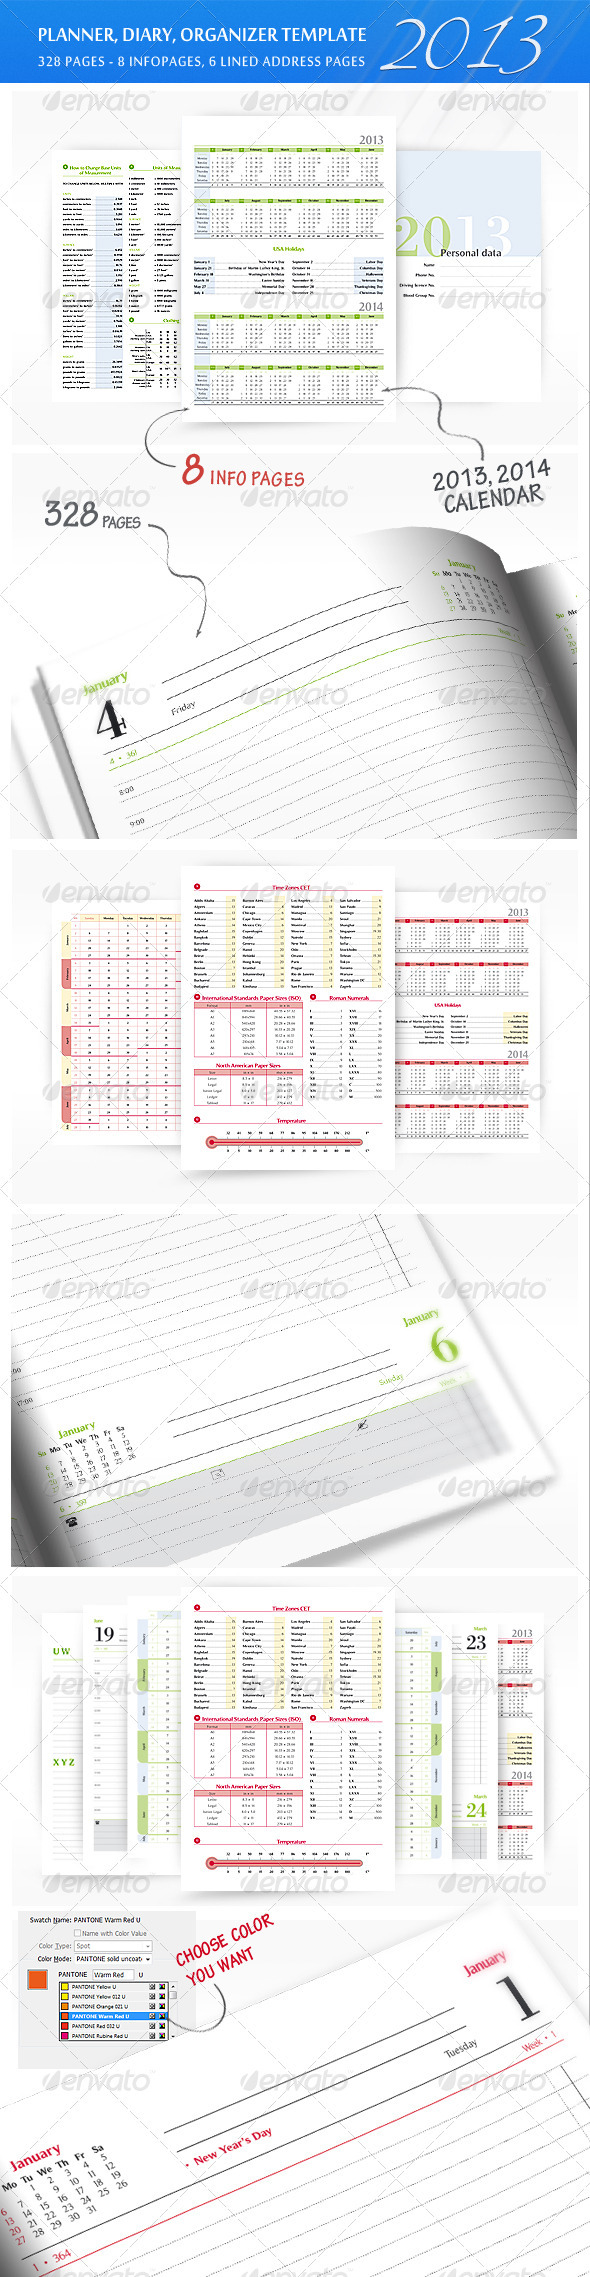 Planner-Diary-Organizer 2013 - Calendars Stationery